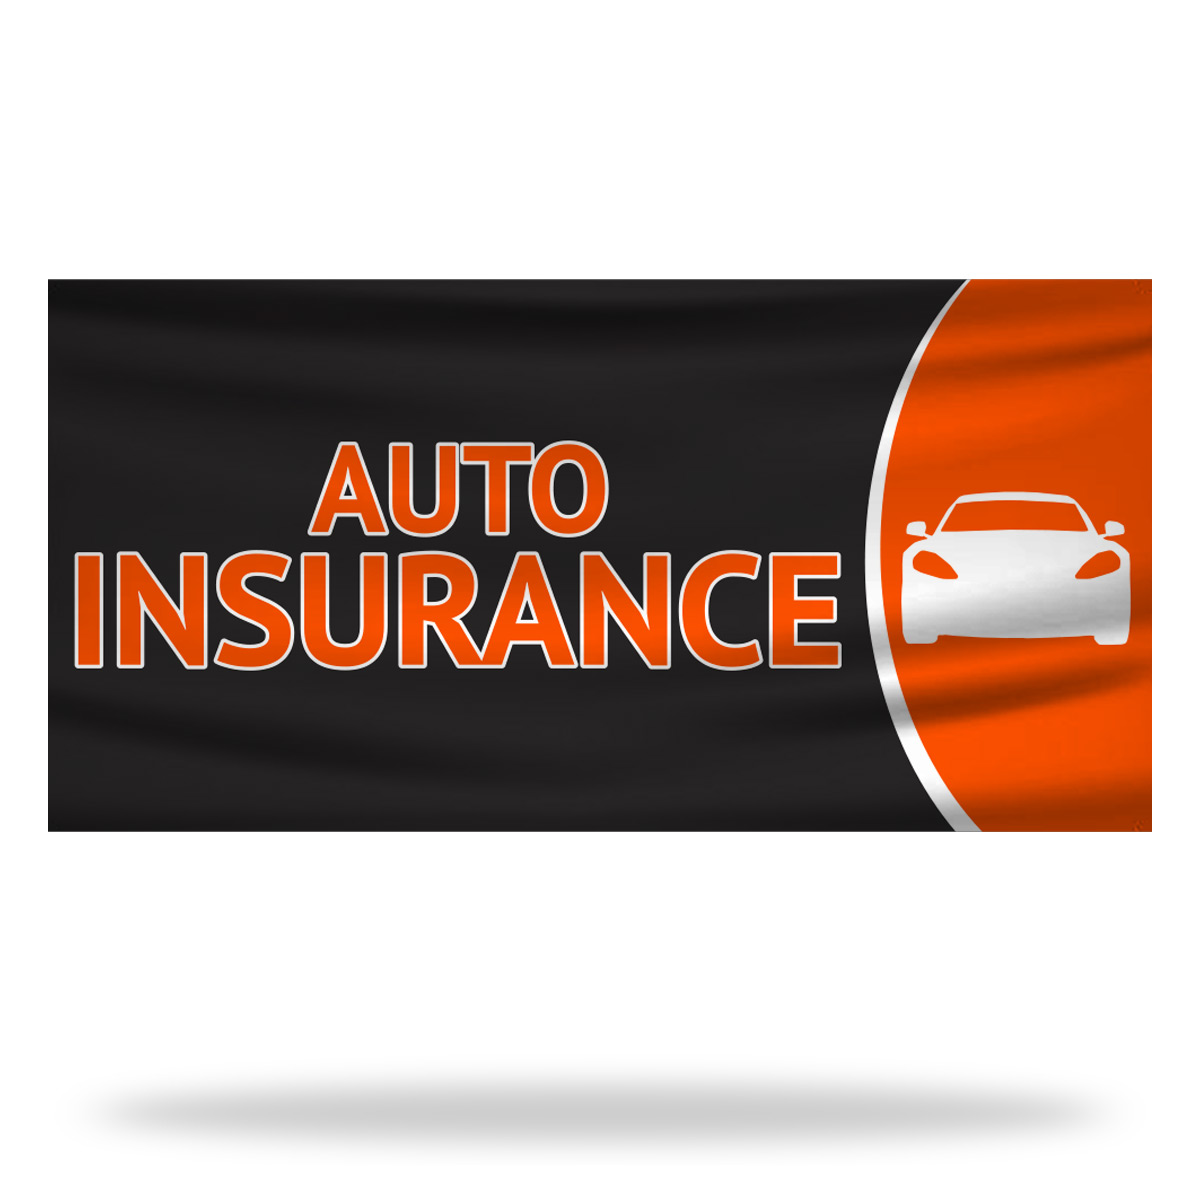 Insurance Flags & Banners Design 03